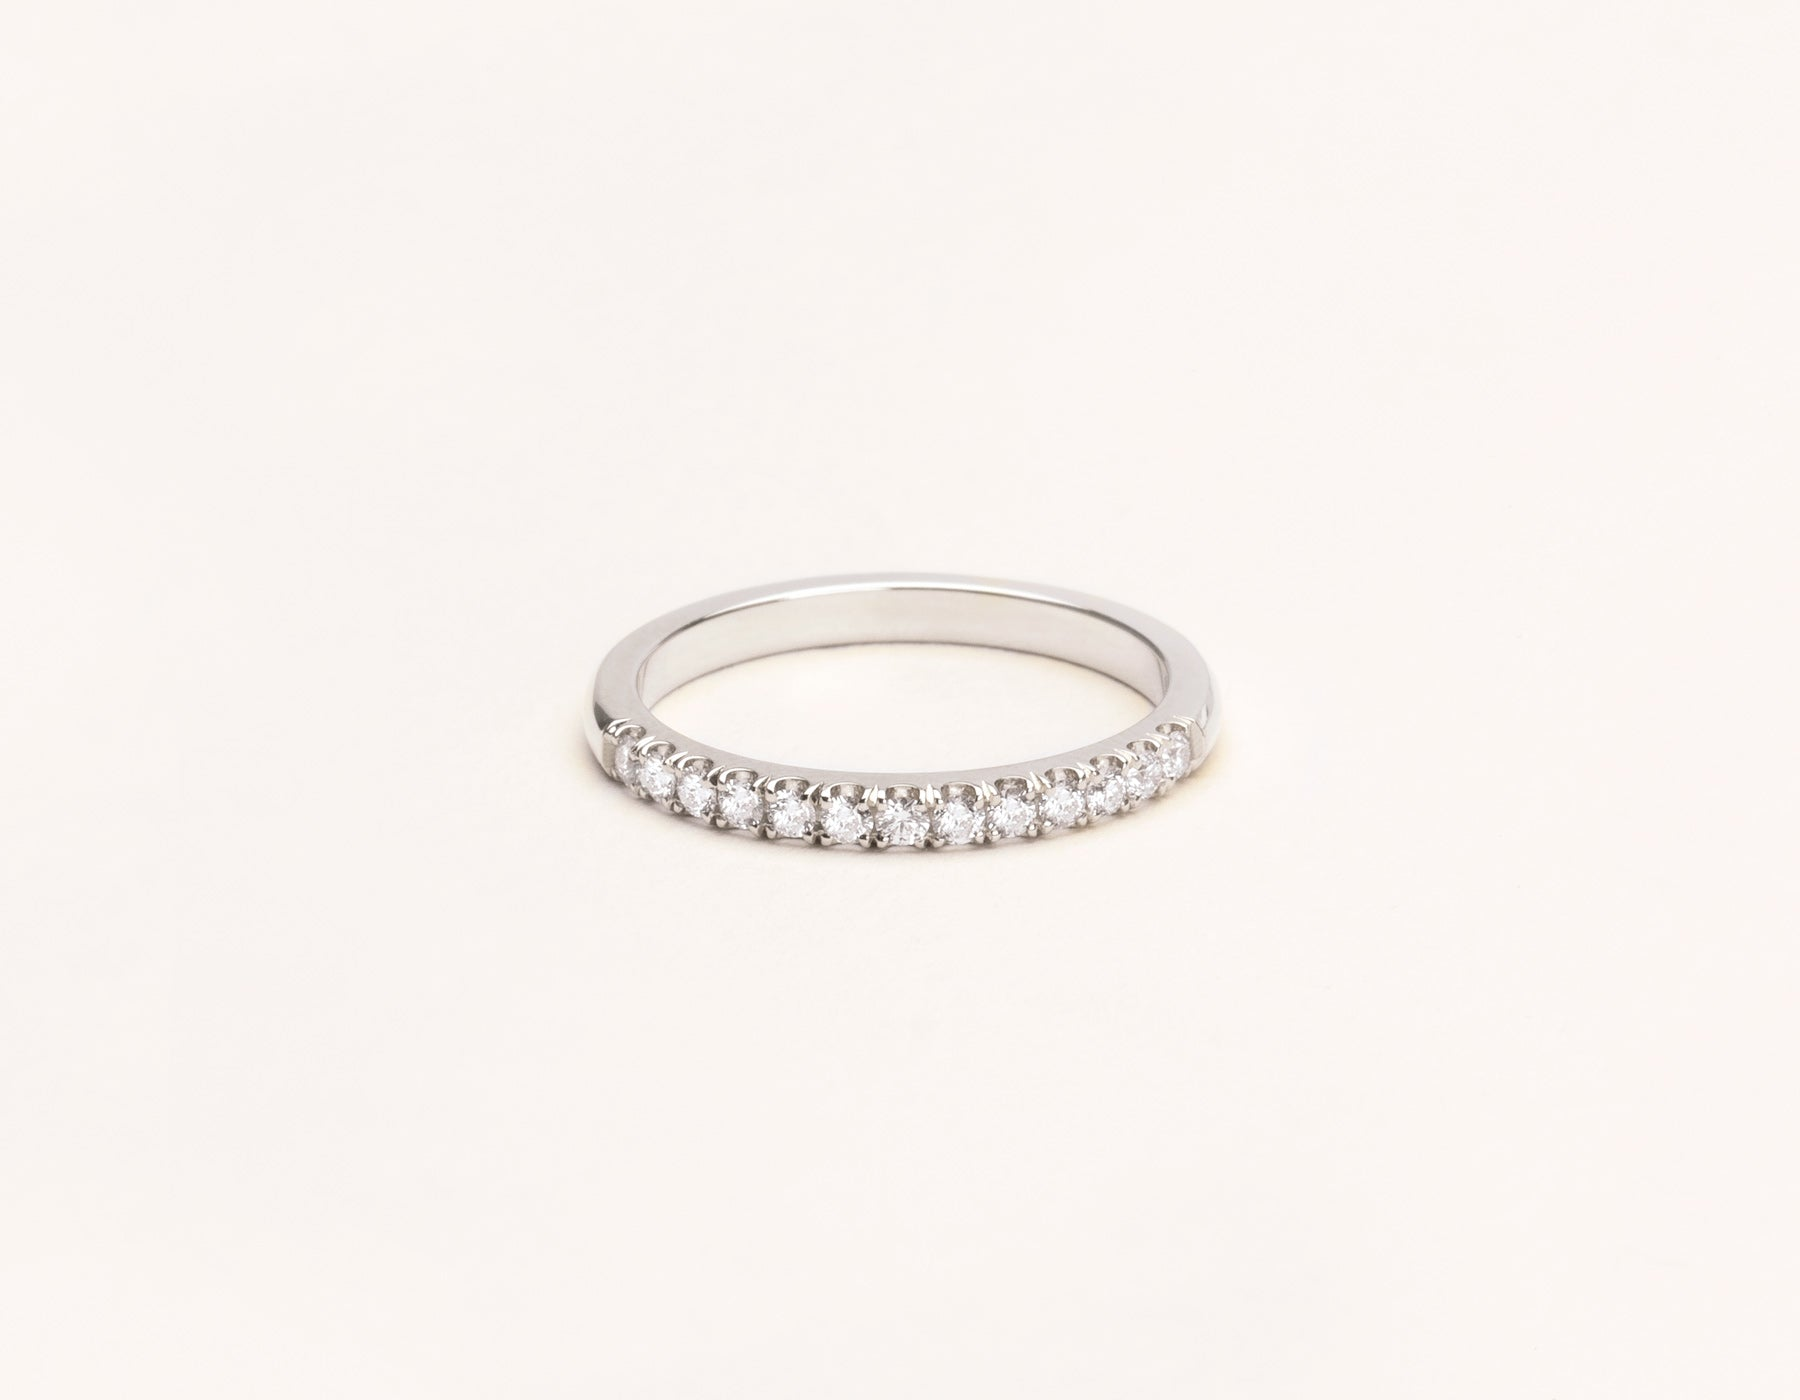 Minimal Vrai & Oro Solid 14k White Gold Large Diamond Pave Band